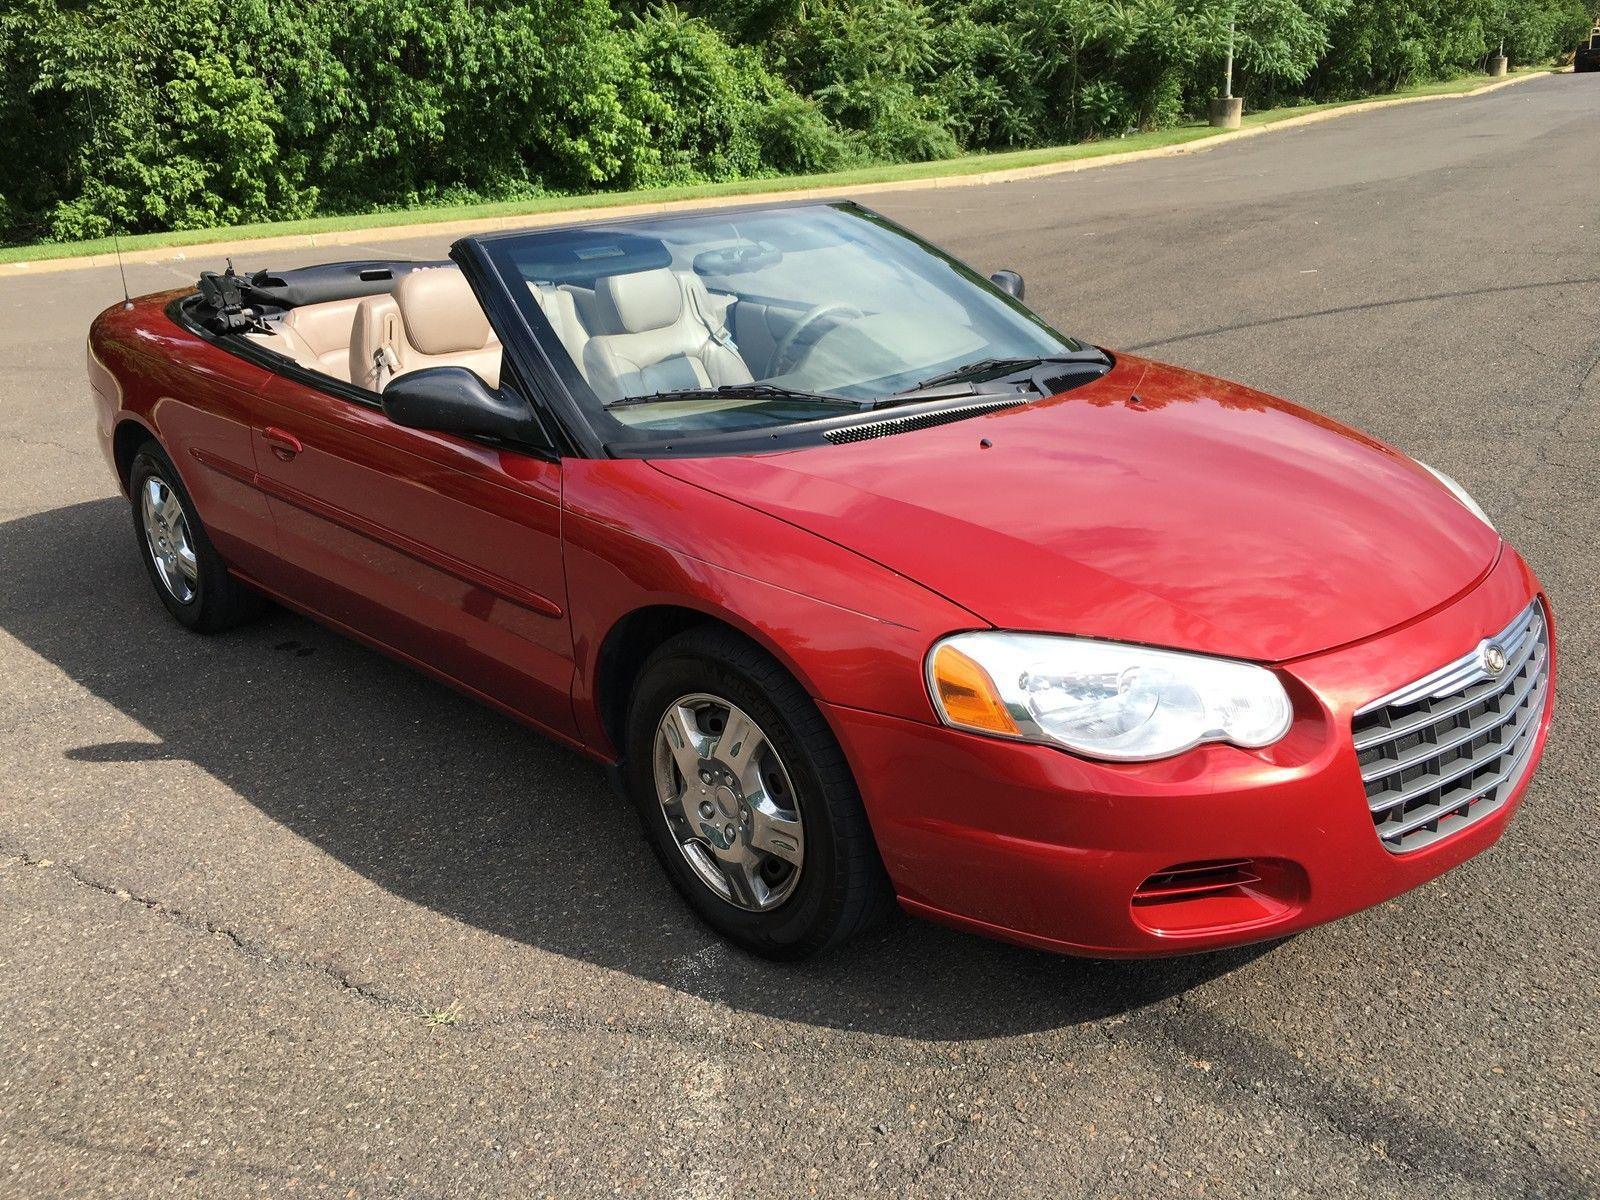 Car Brand Auctioned Chrysler Sebring 04 Car Model Chrysler Sebring